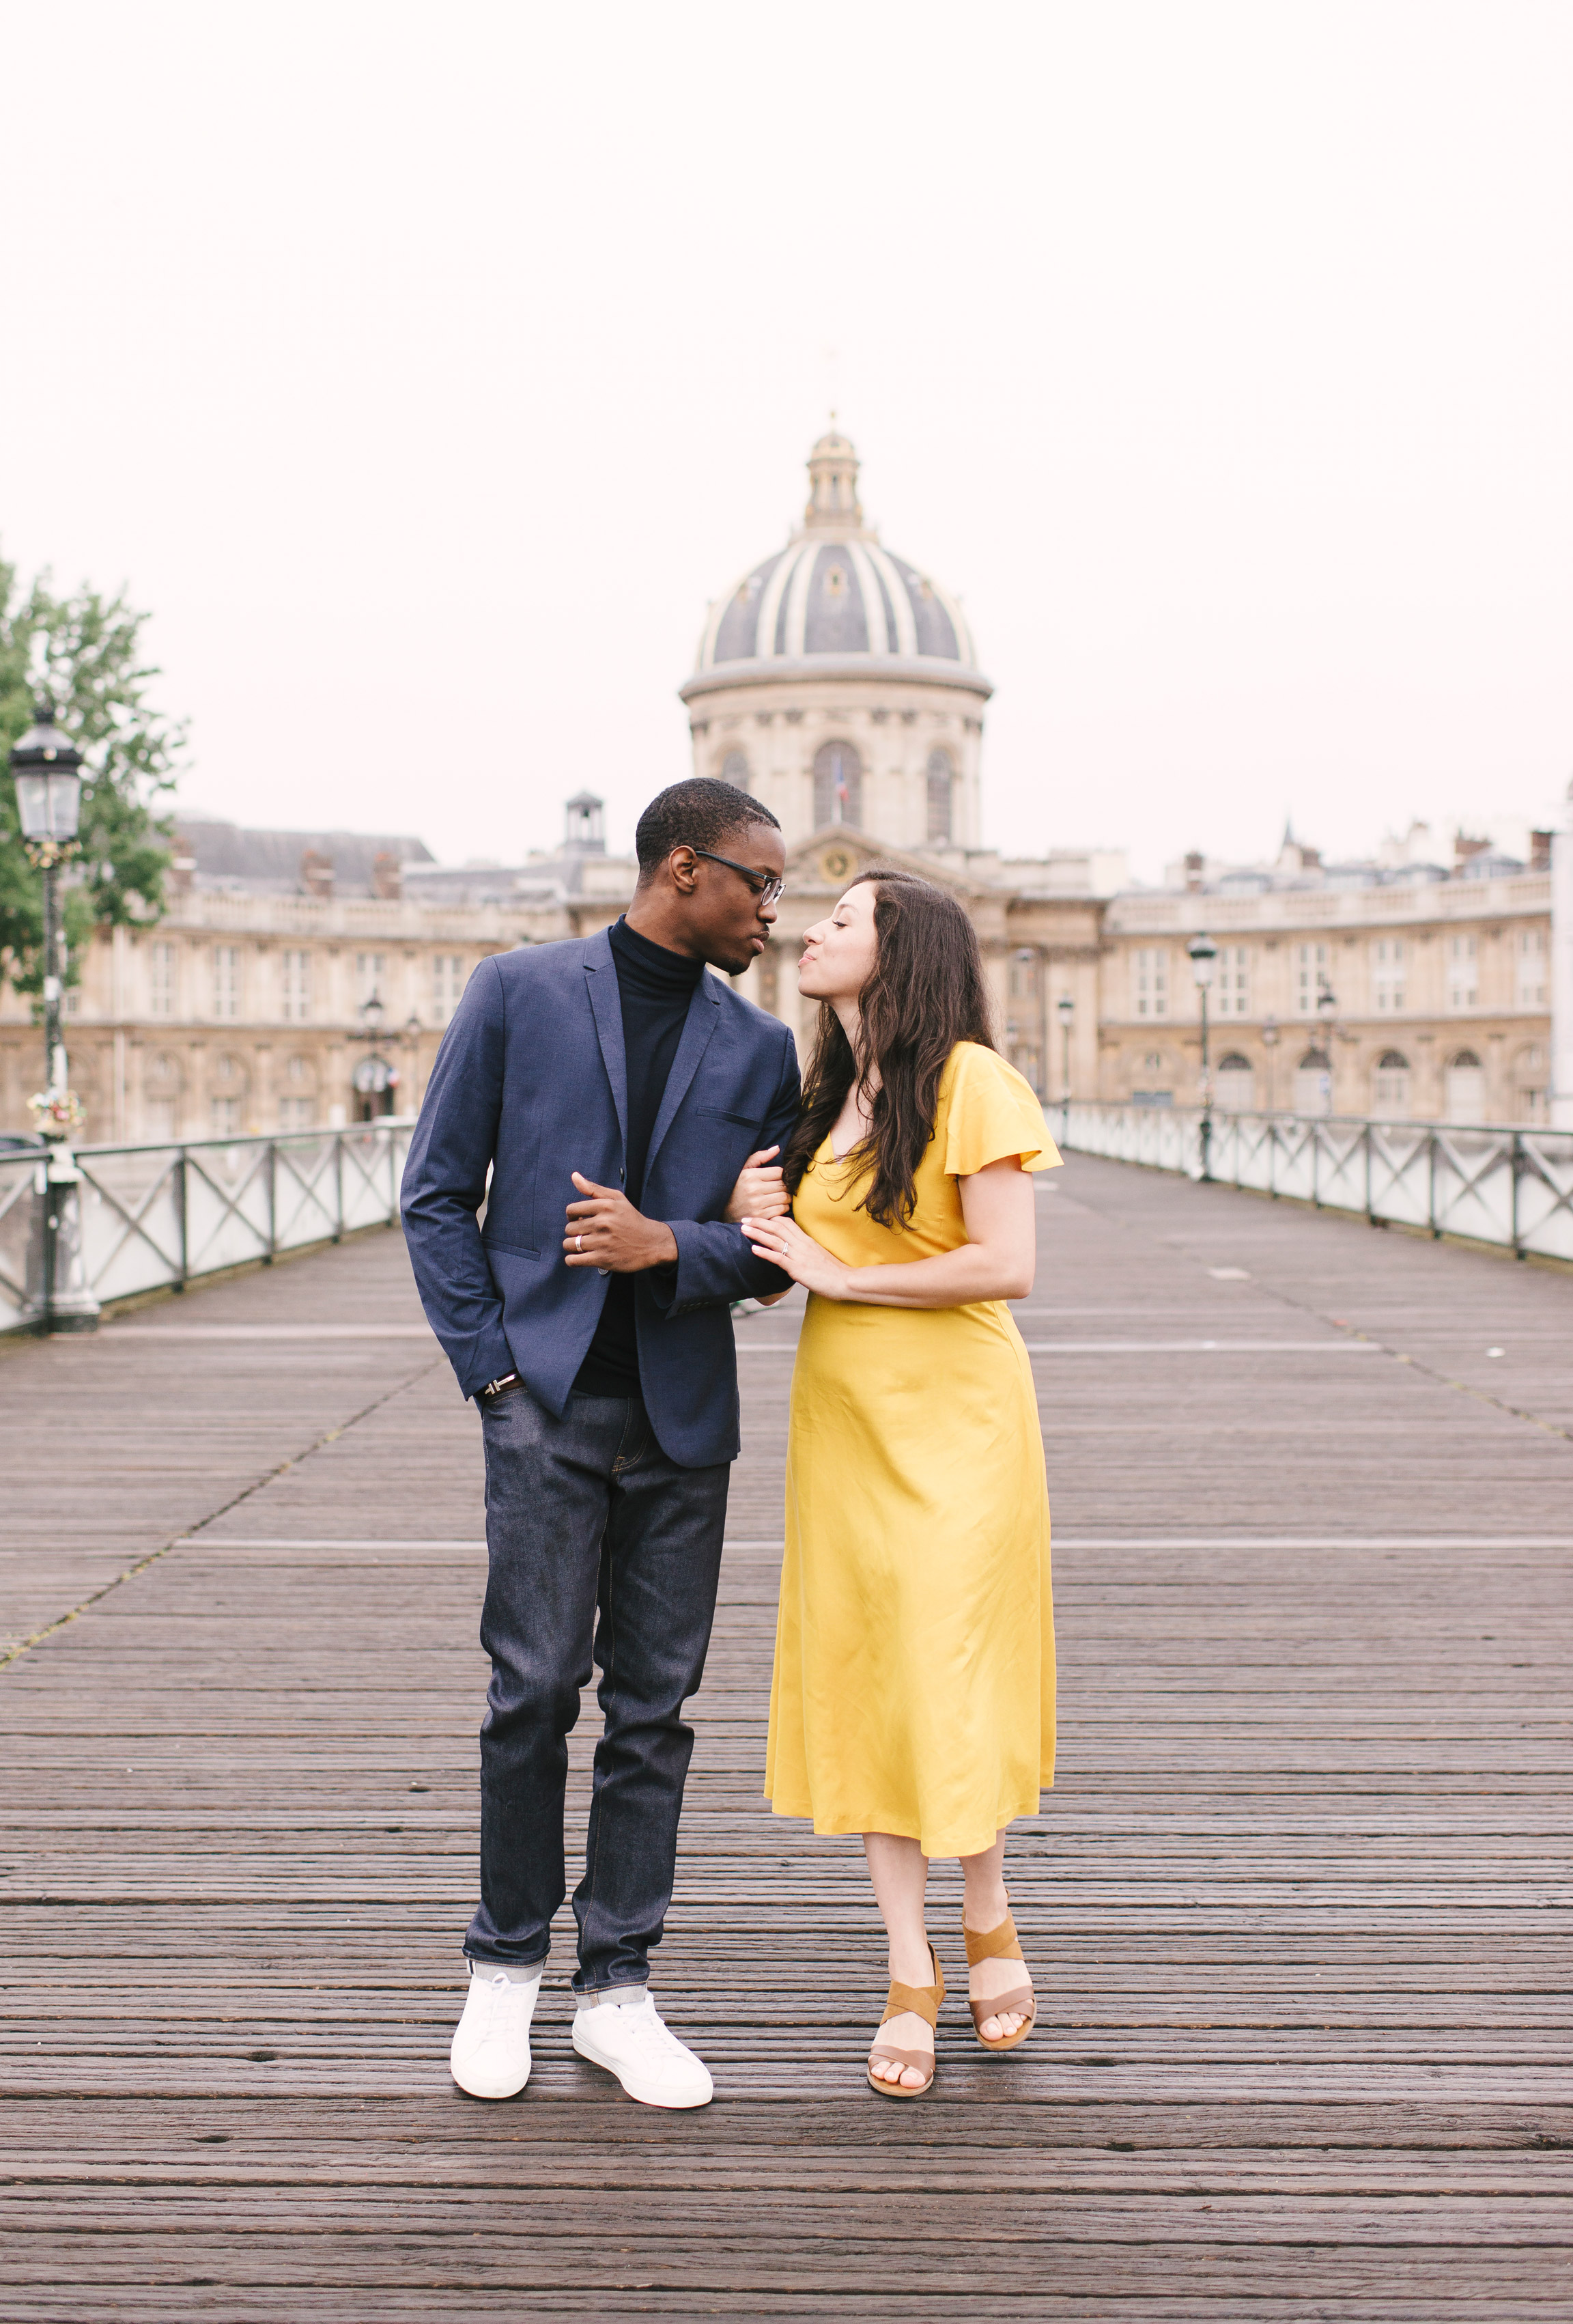 Couple-photoshoot-Paris-Pont-des-arts-Louvre-PalaisRoyale-026.jpg